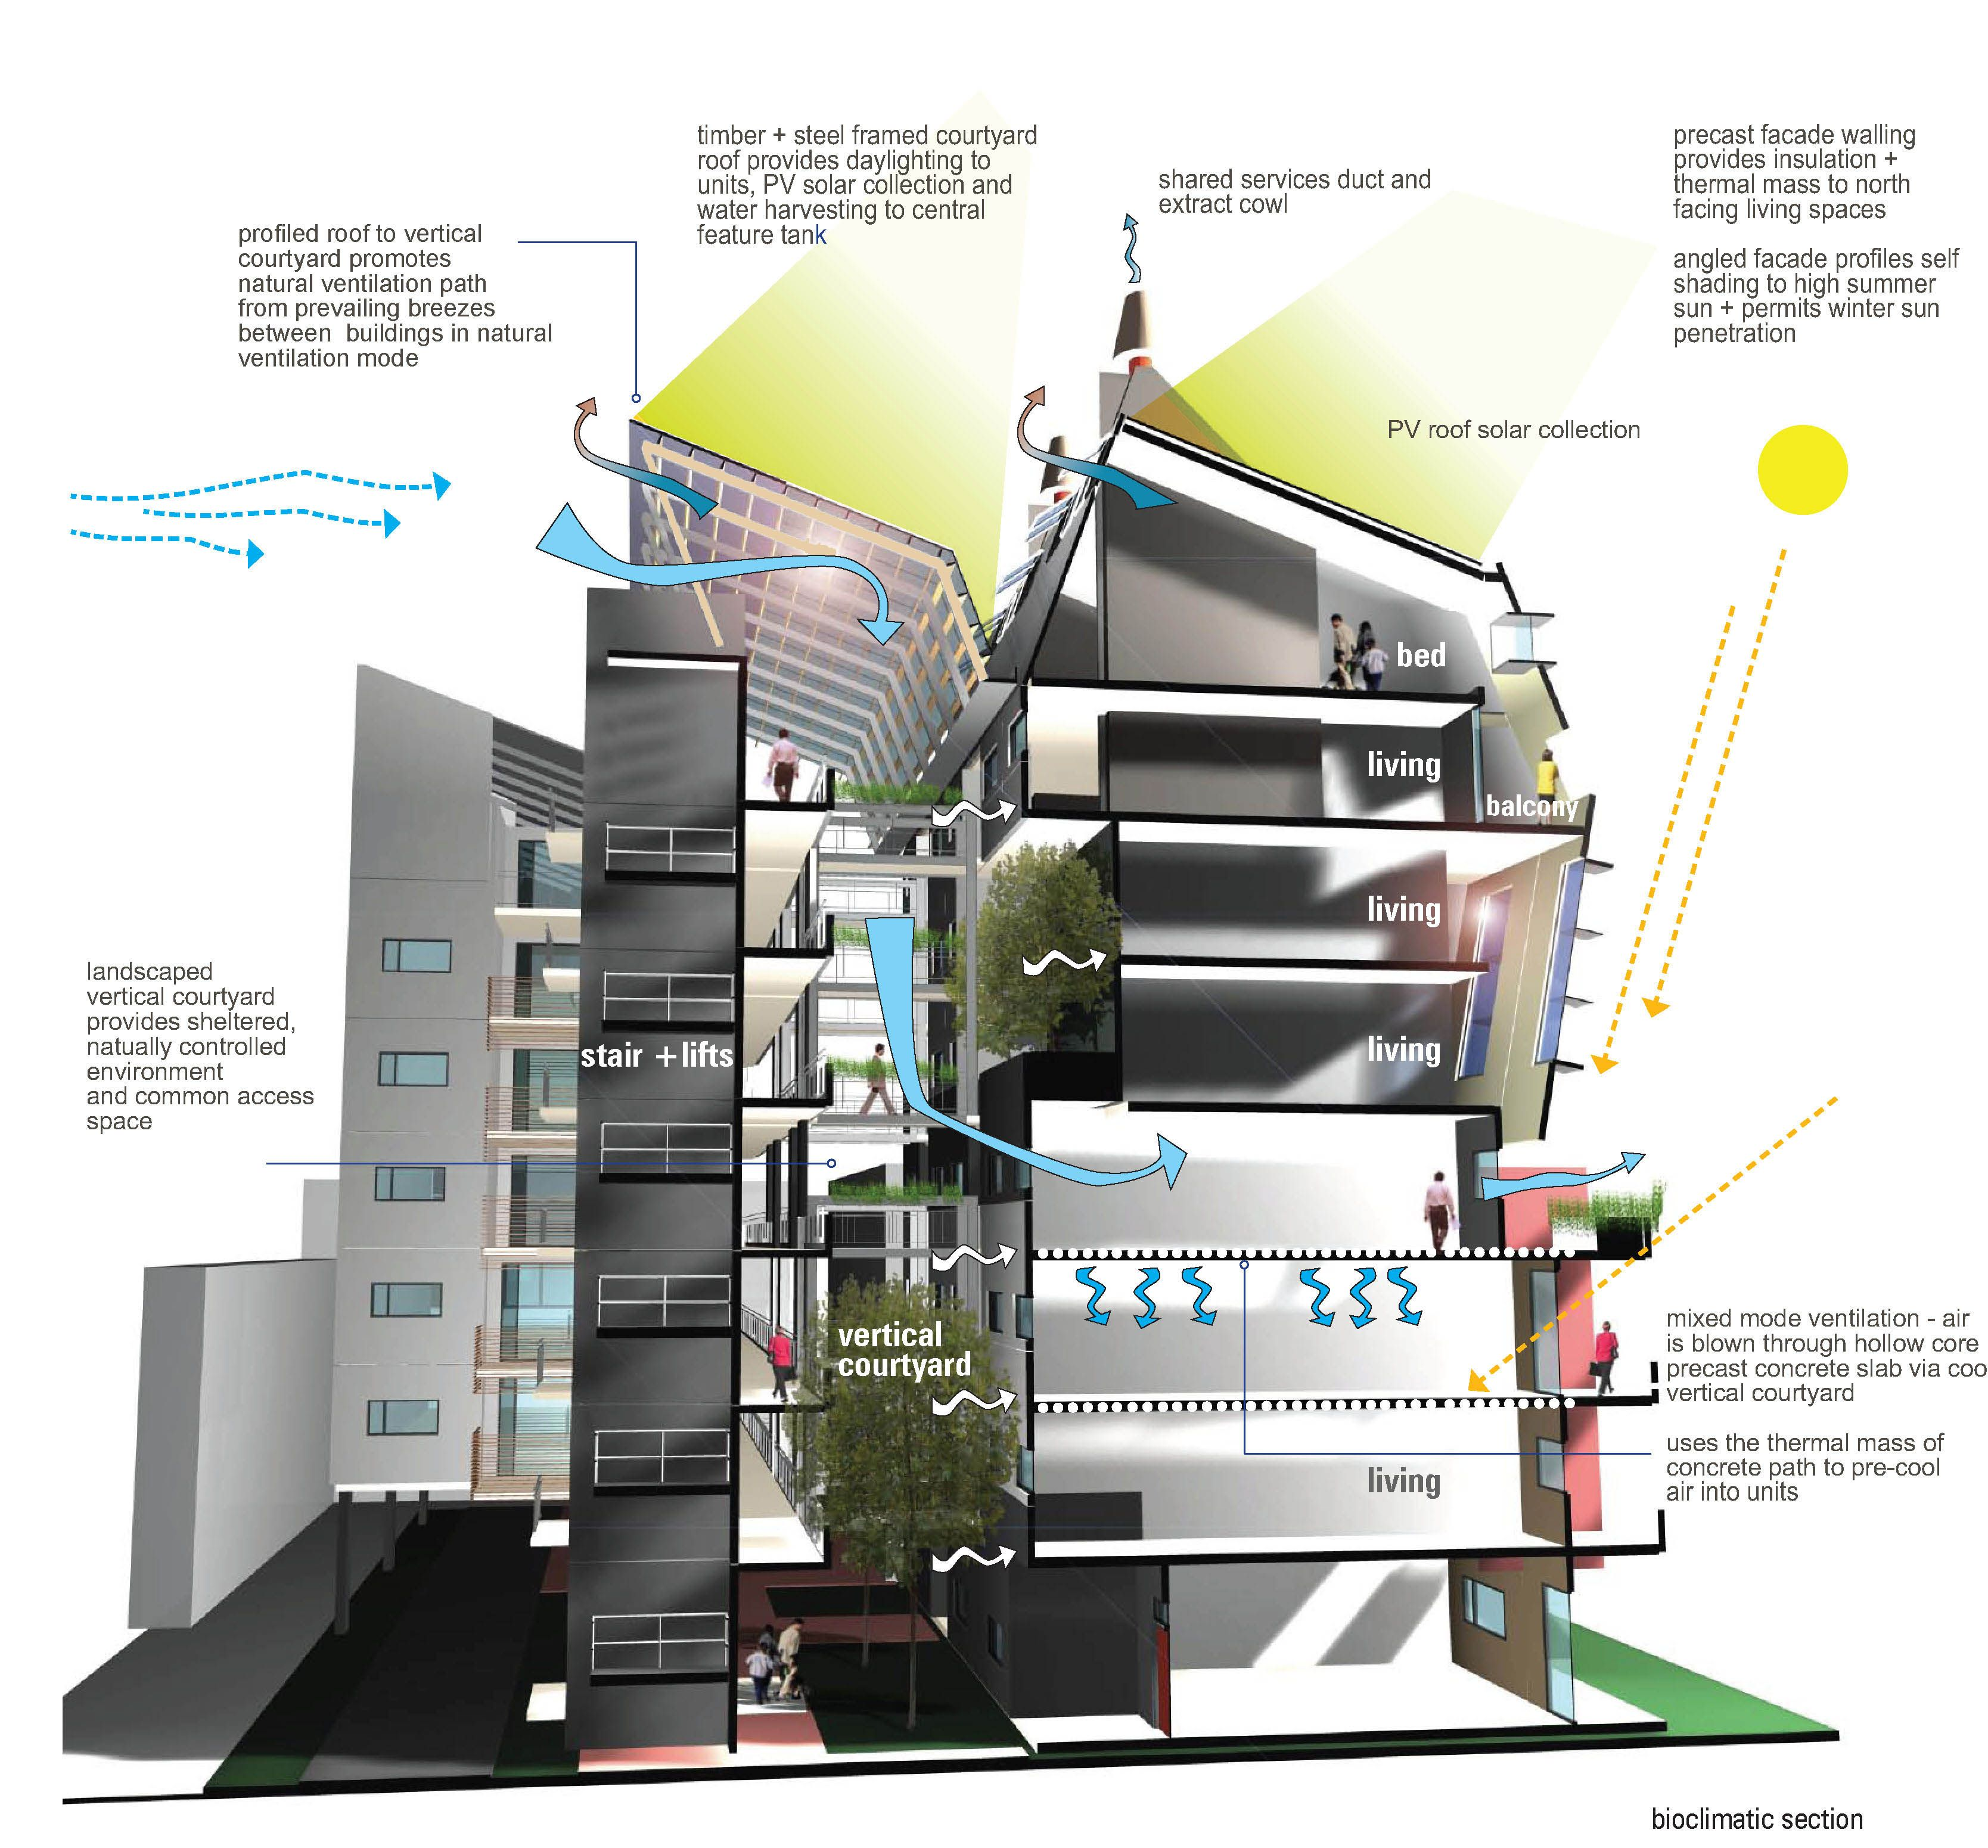 medium resolution of this diagram shows a vertical courtyard concept to promote natural ventilation on various levels of the building while also utilizing prevailing breezes